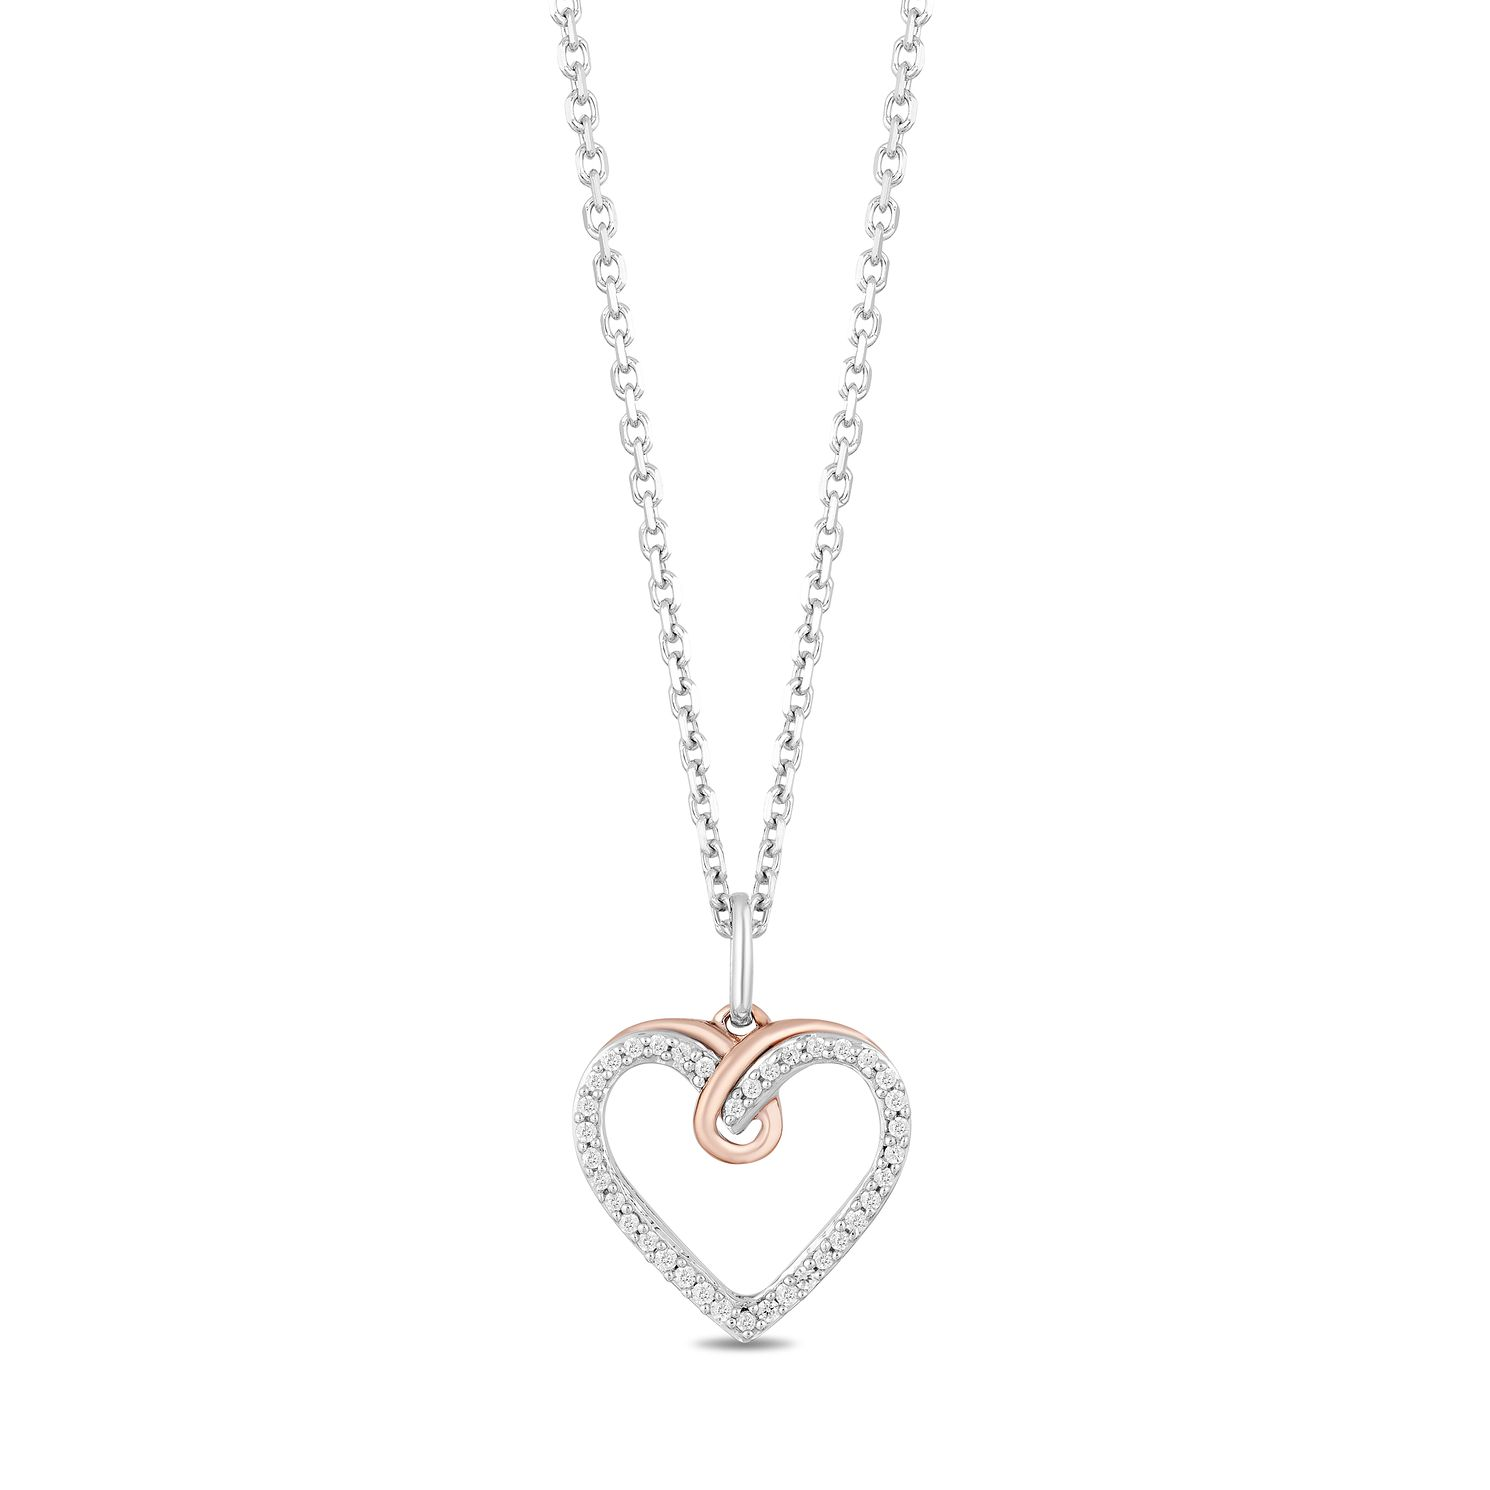 Hallmark Silver & 9ct Gold Diamond Heart Pendant - Product number 3886352